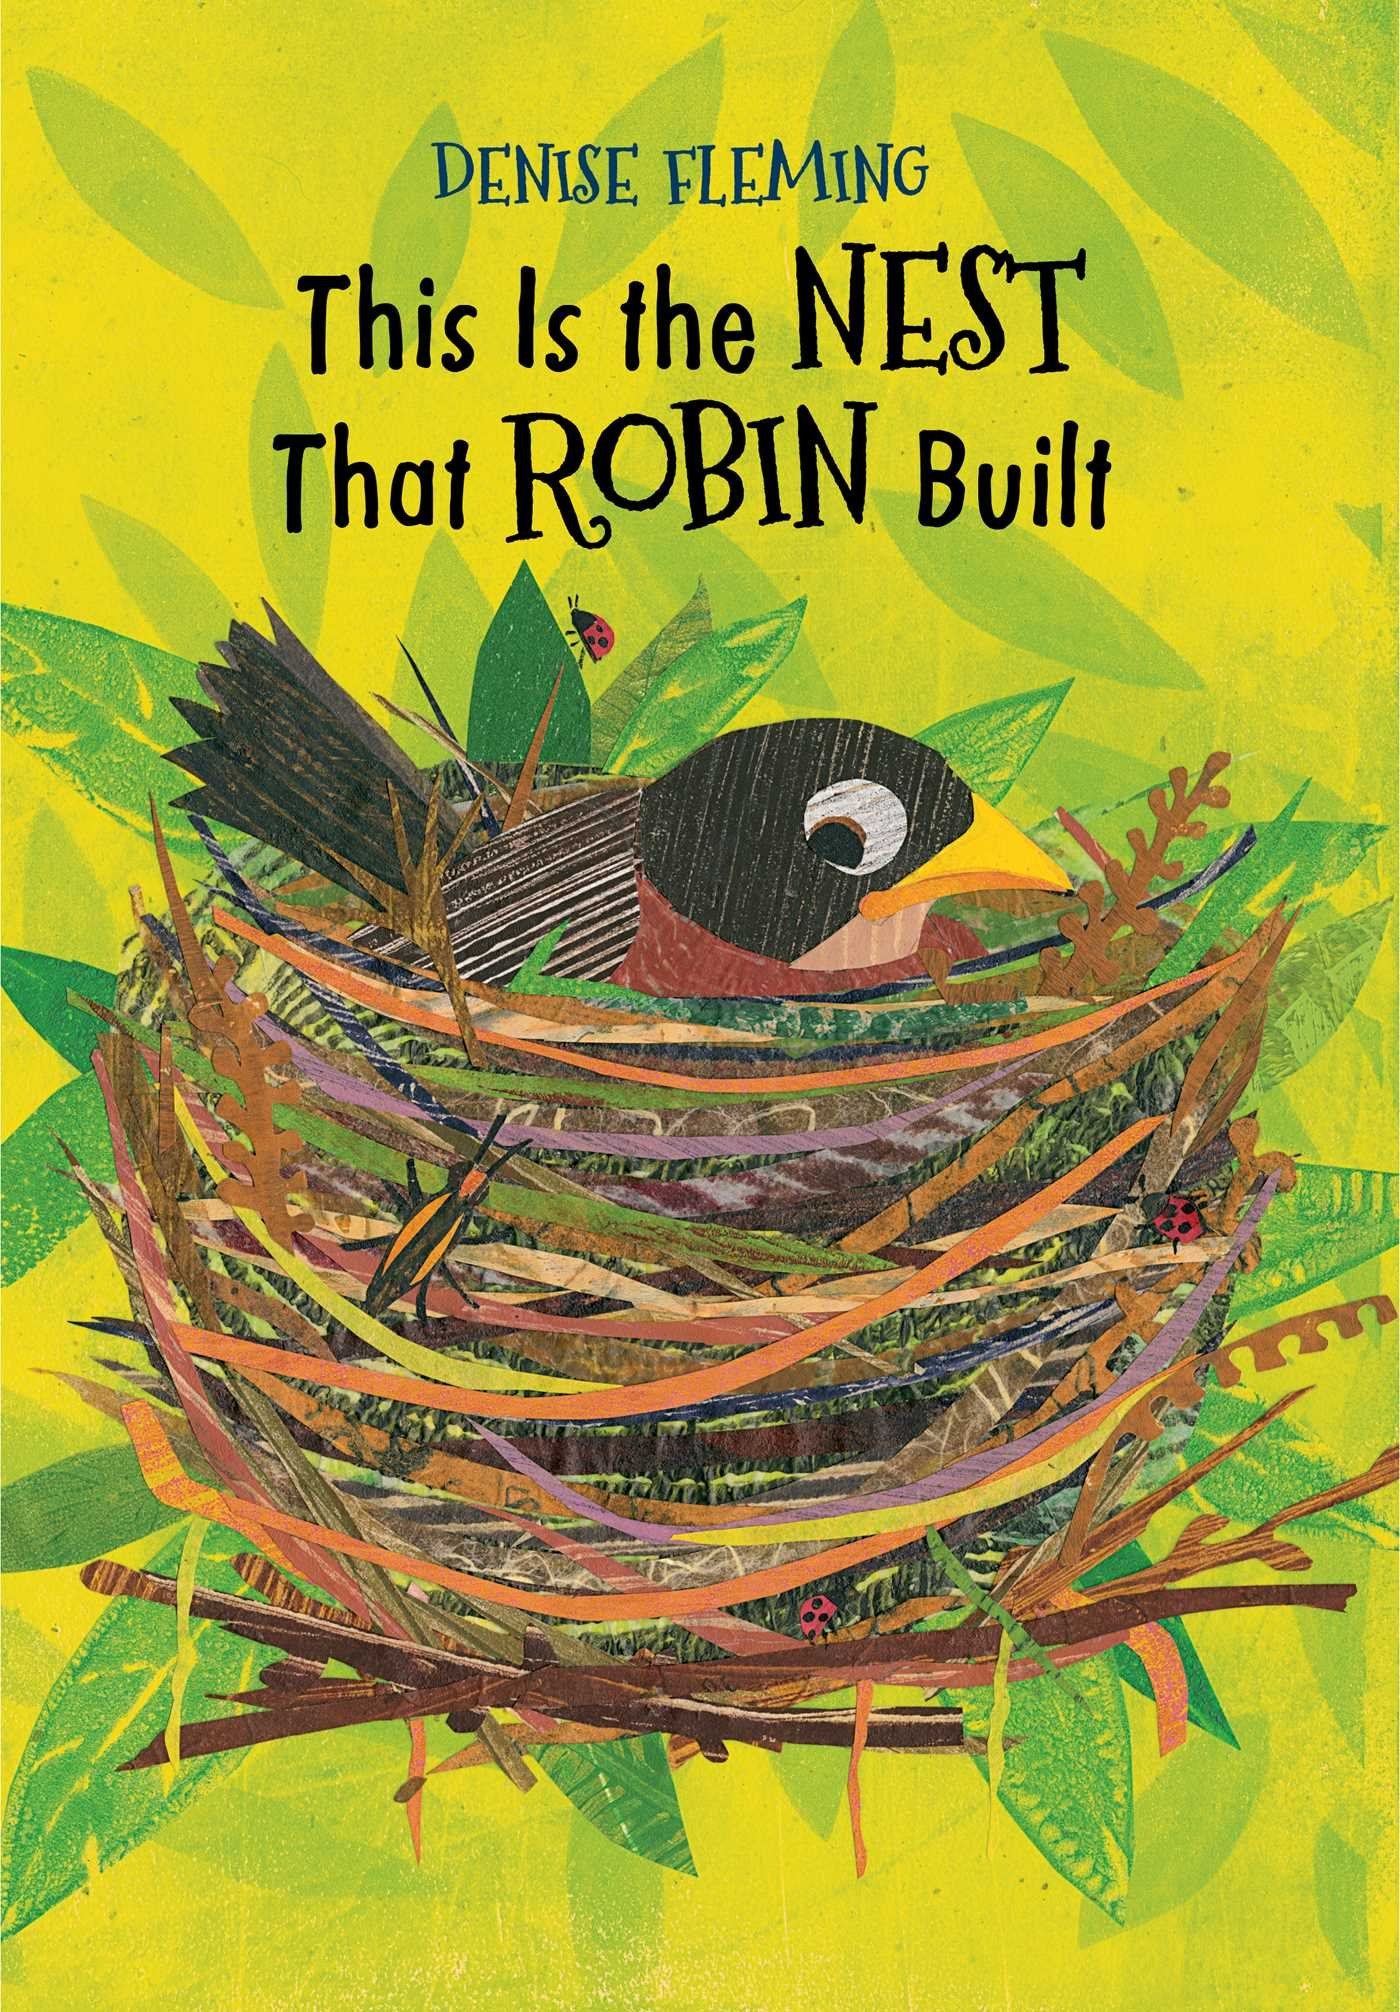 Image of This is the Nest That Robin Built Cover.